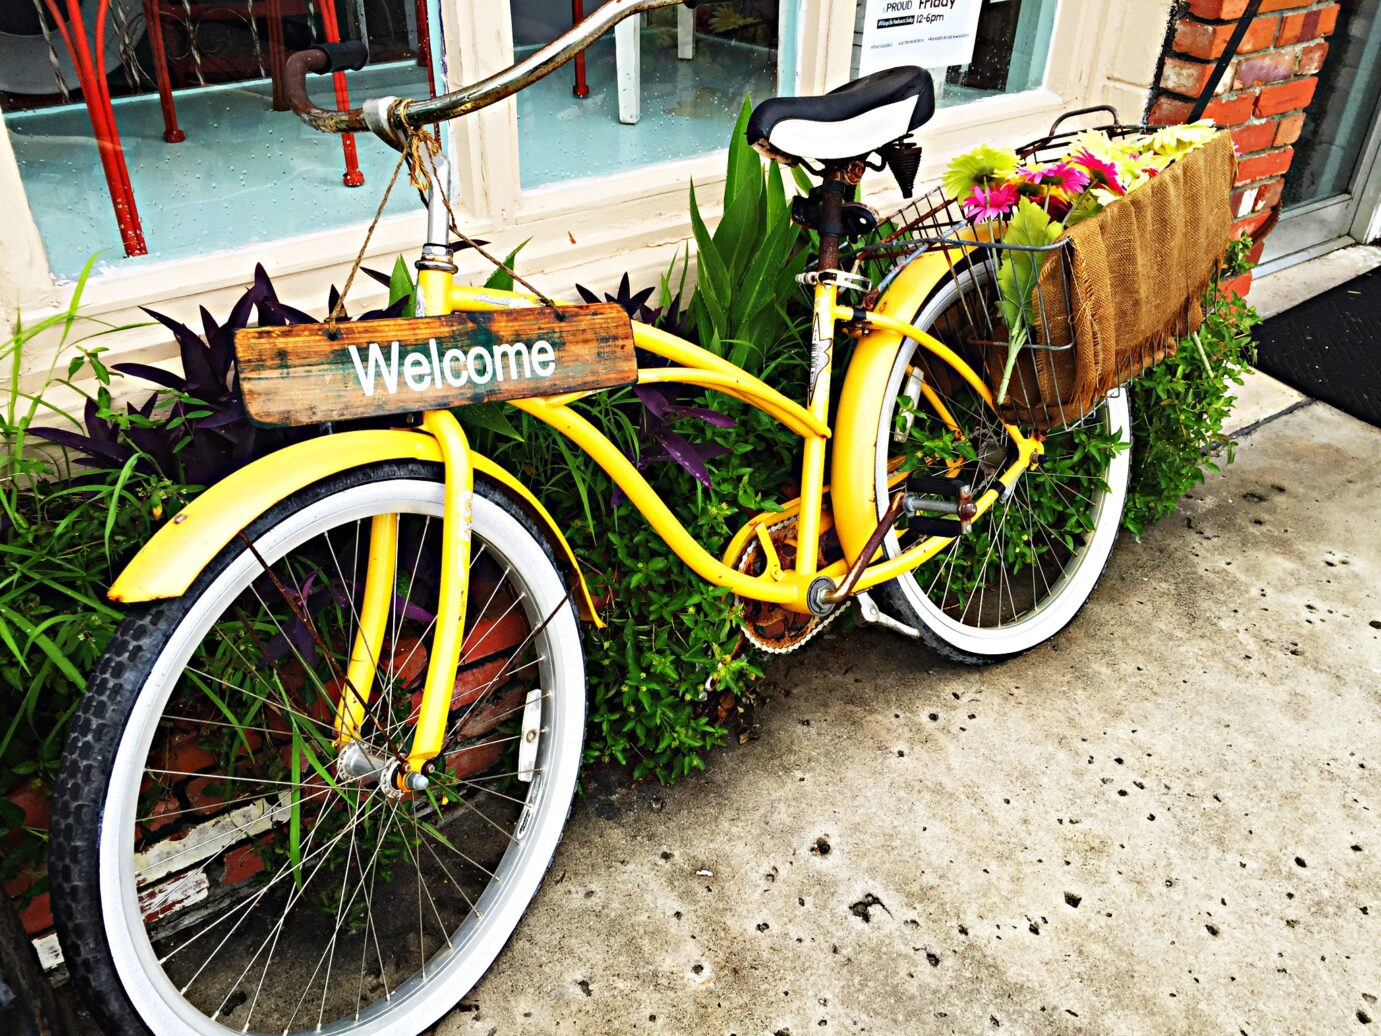 Image of welcome sign on a yellow bike with flowers.